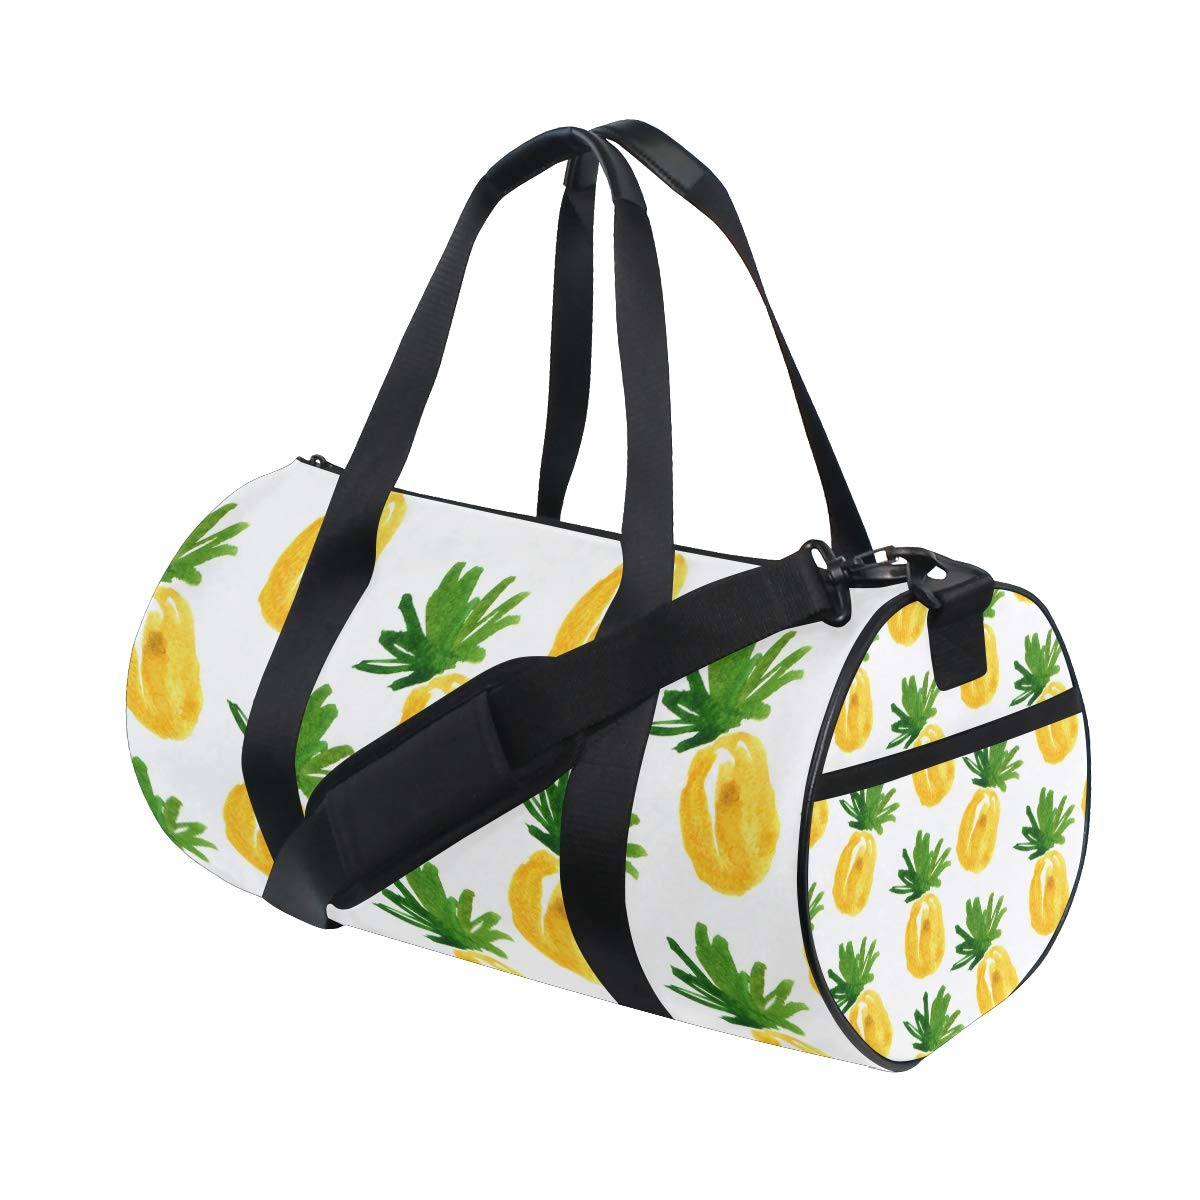 Pineapple Yoga Sports Gym Duffle Bags Tote Sling Travel Bag Patterned Canvas with Pocket and Zipper For Men Women Bag